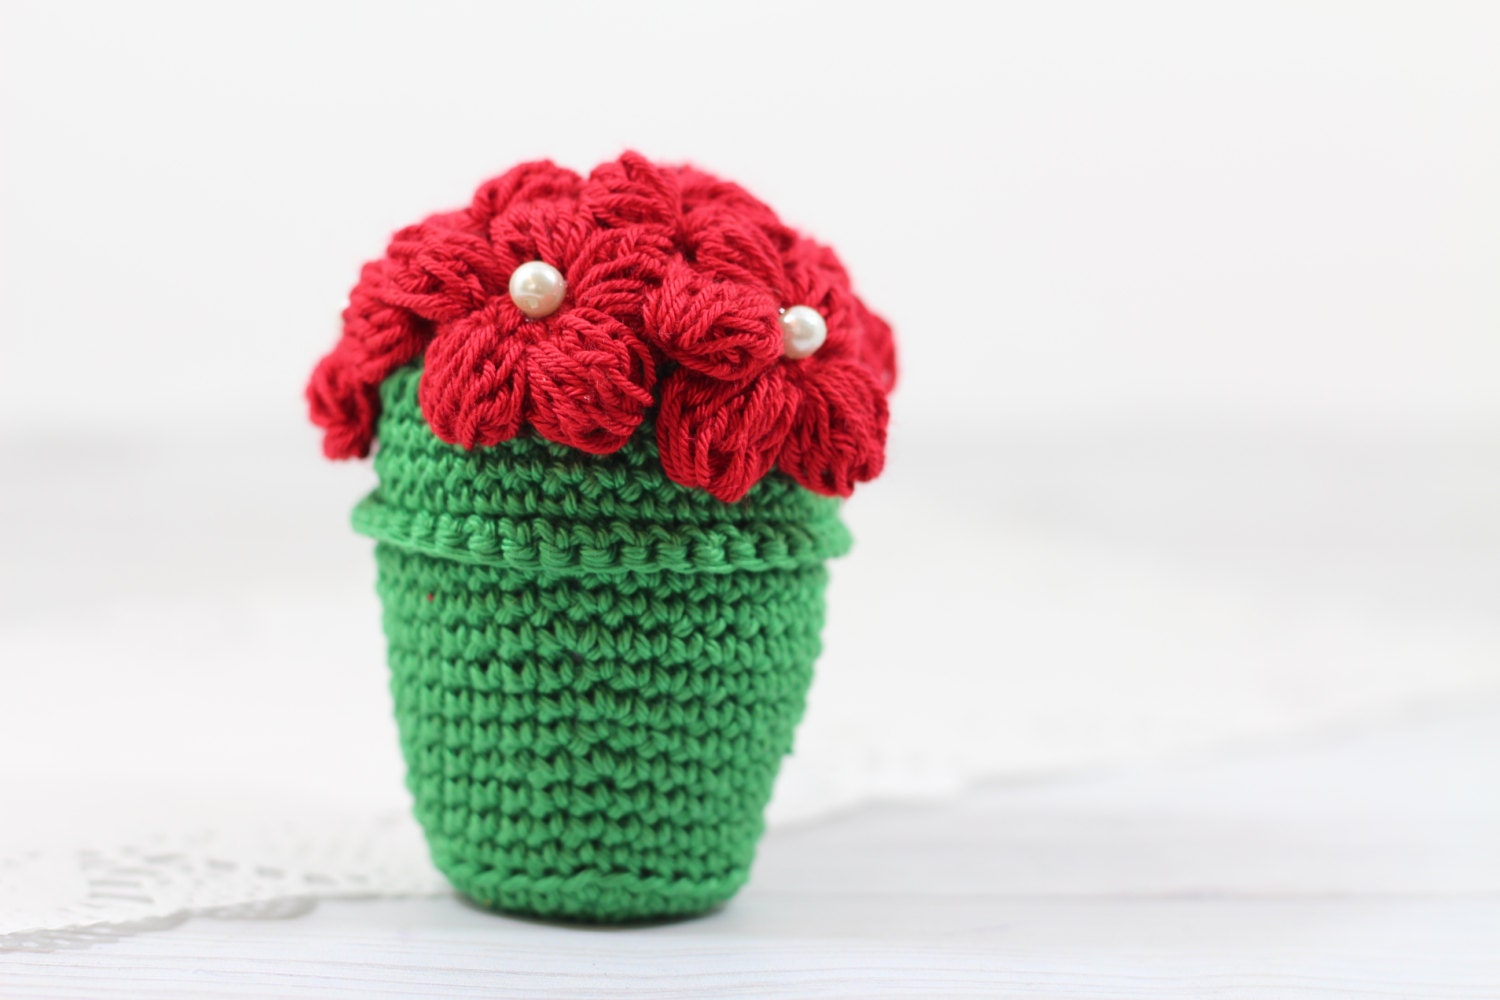 Amigurumi Flower Tutorial : Crocheted Flower Pot Tutorial Amigurumi Flower Pot by etty2504